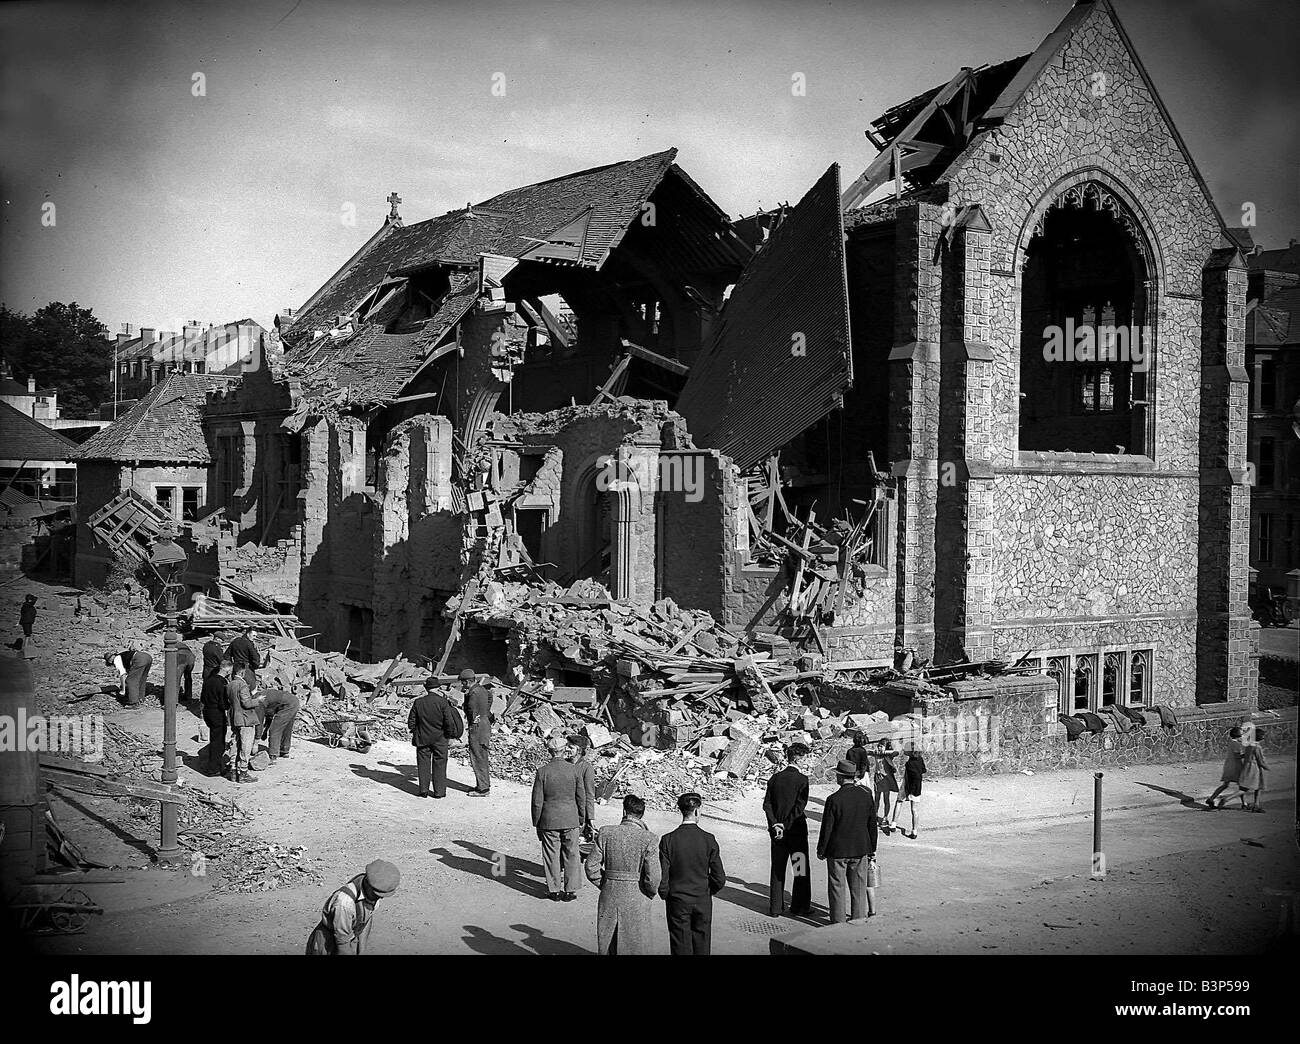 Bomb damaged Grimsby during WW2 People survey the damage left after an air raid bomb - Stock Image